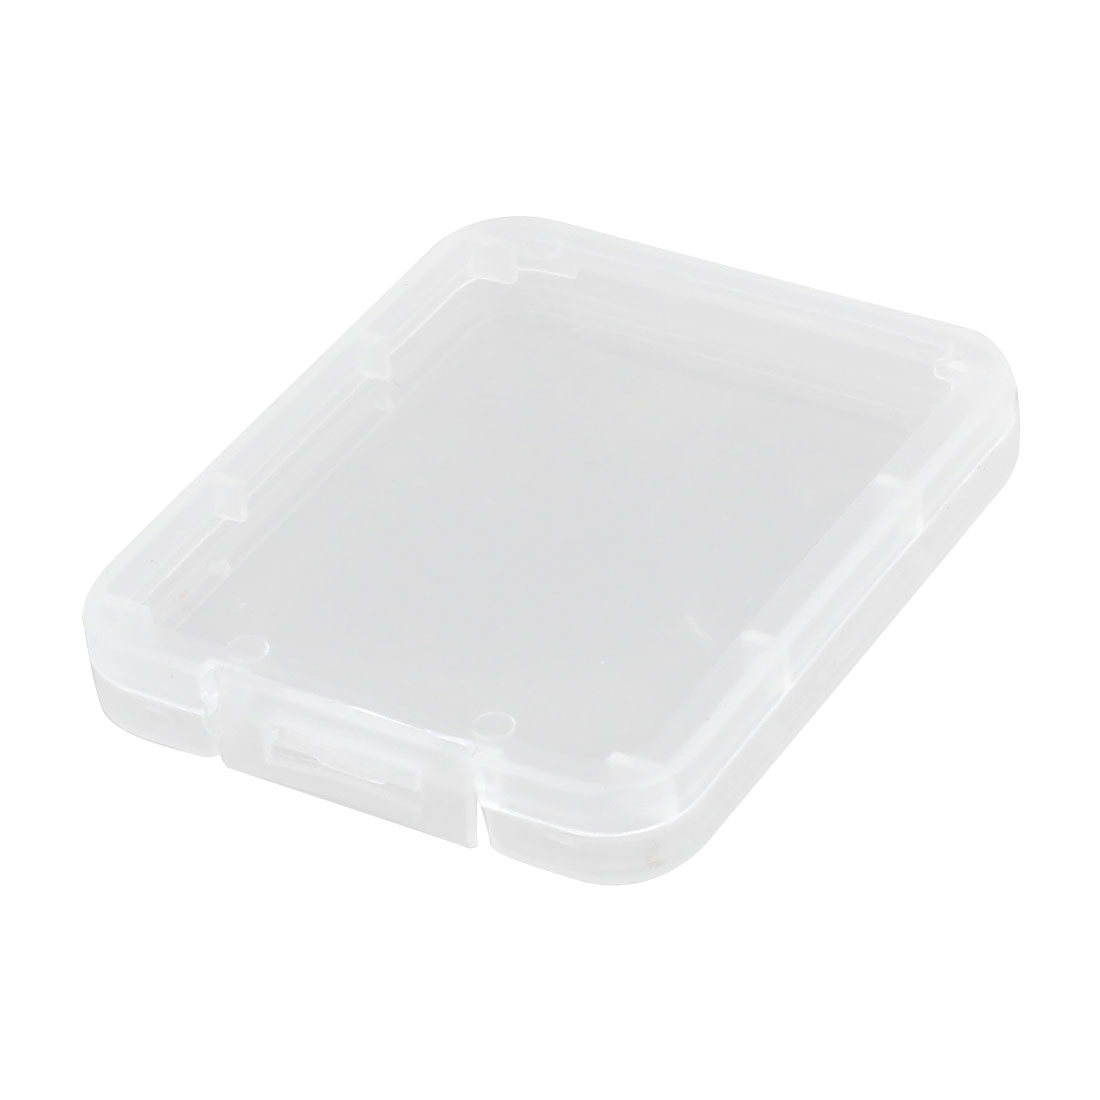 Memory CF SIM Card Clear White Plastic Storage Box Container 5.2 x 4.3 x 0.7cm